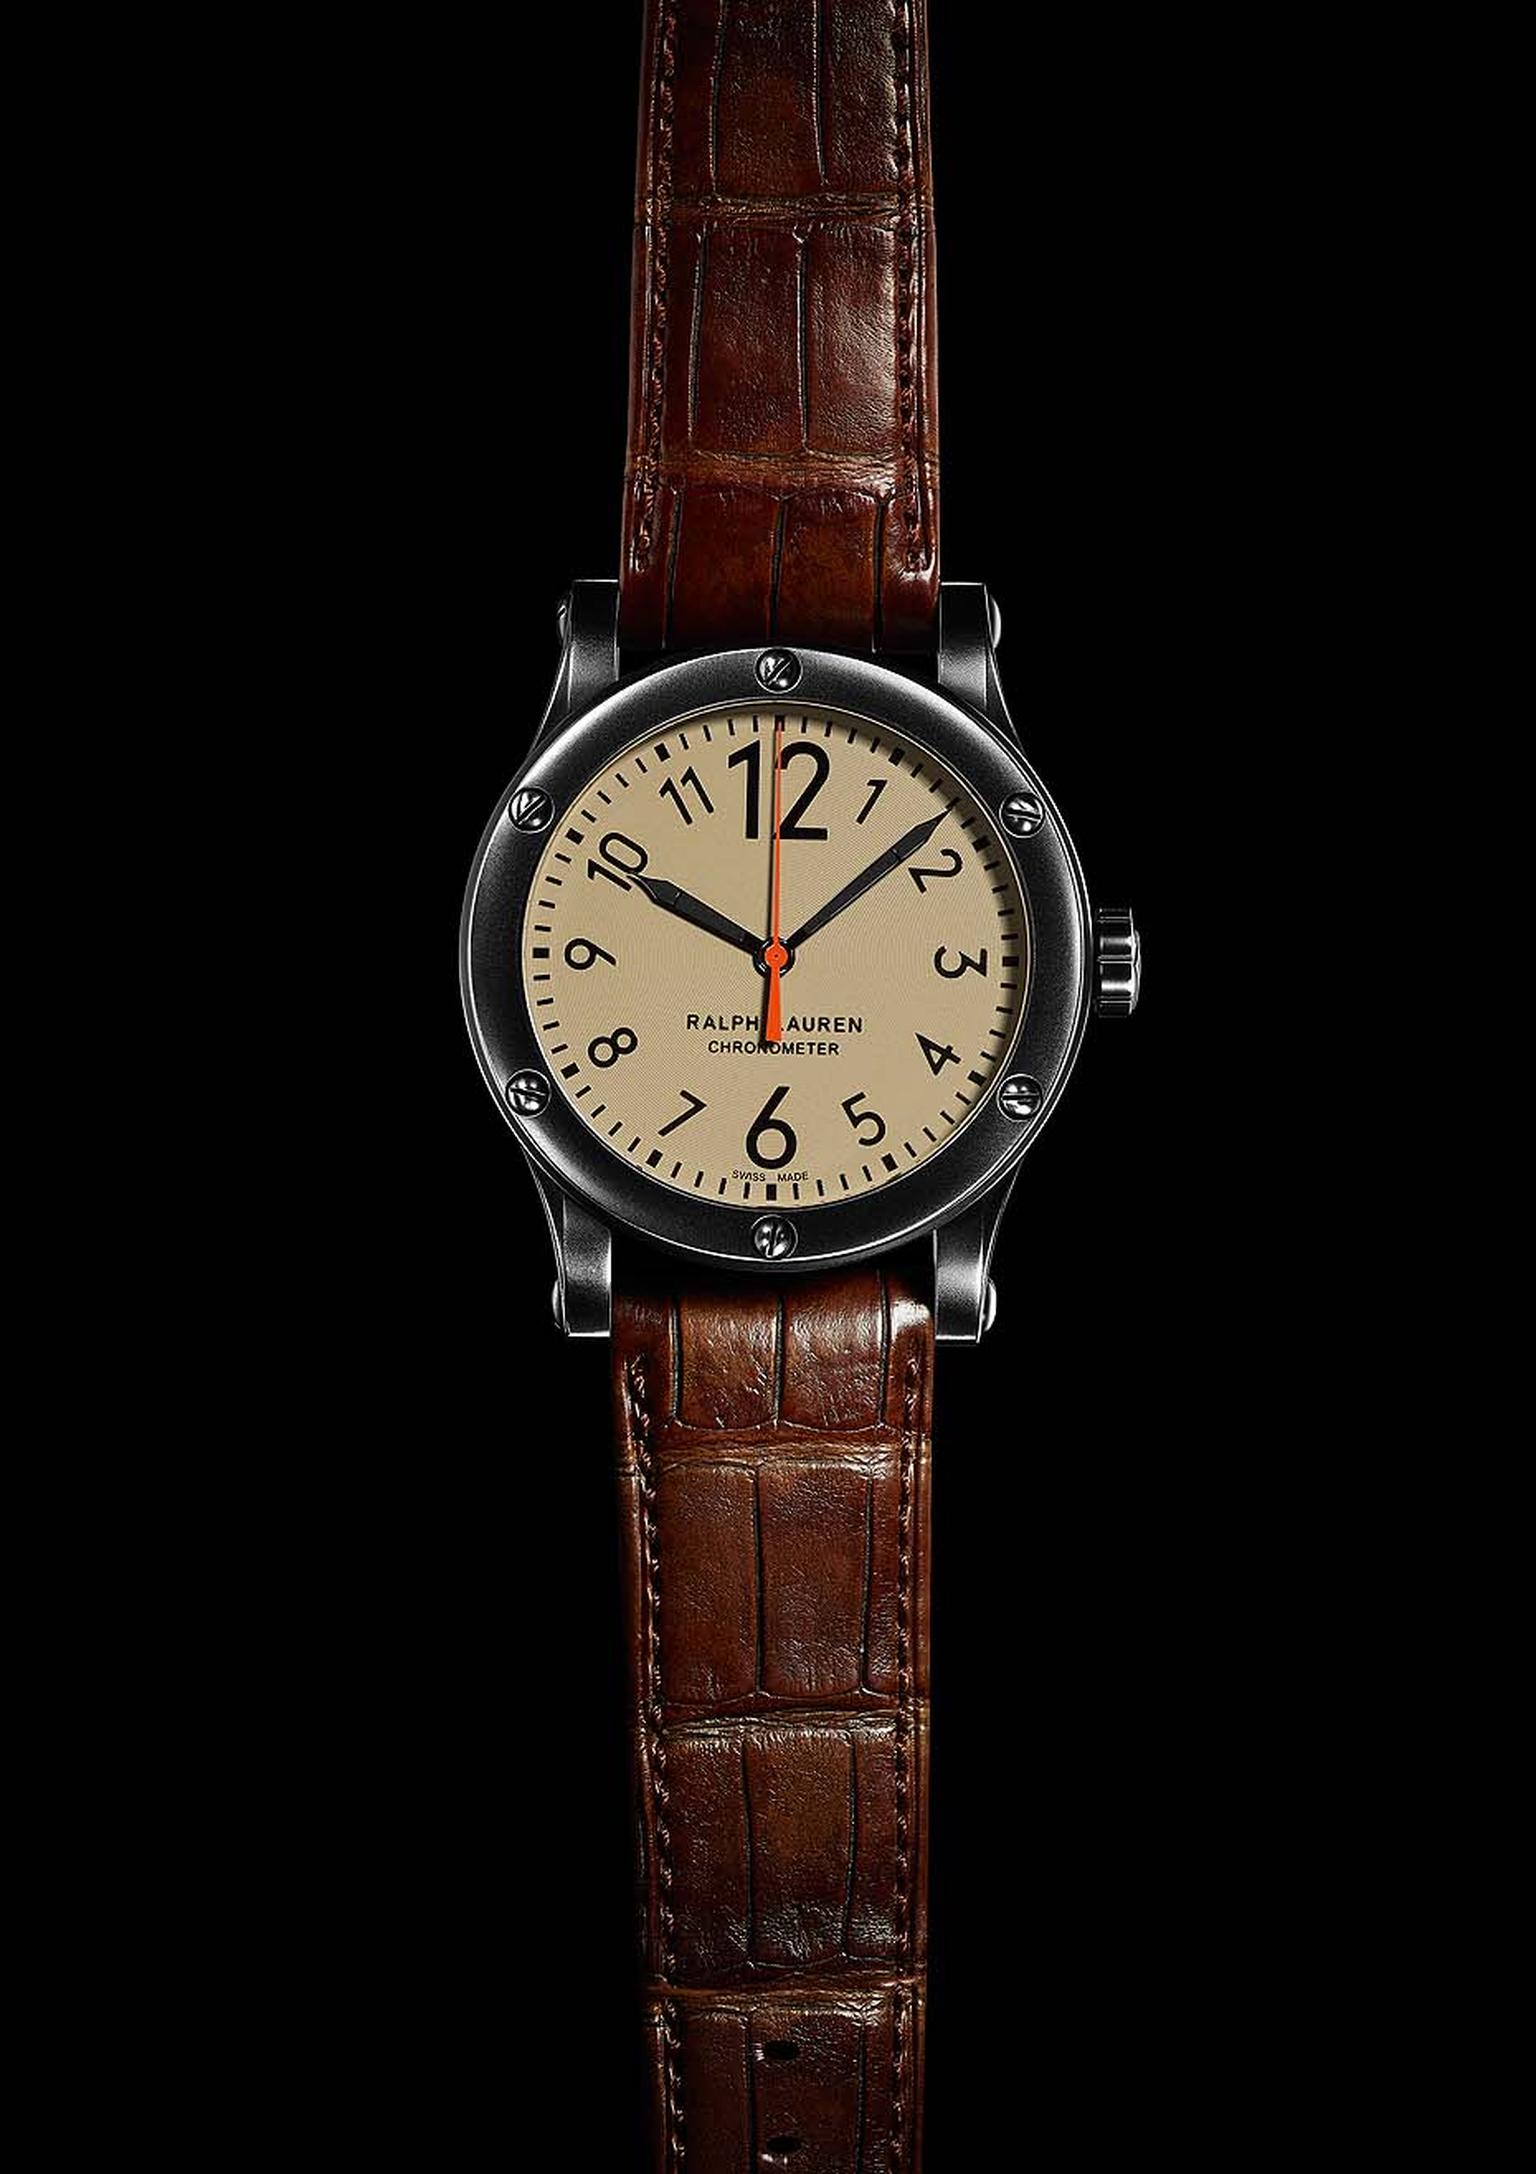 Ralph Lauren watch_Safari_Chronomoter_45mm.jpg